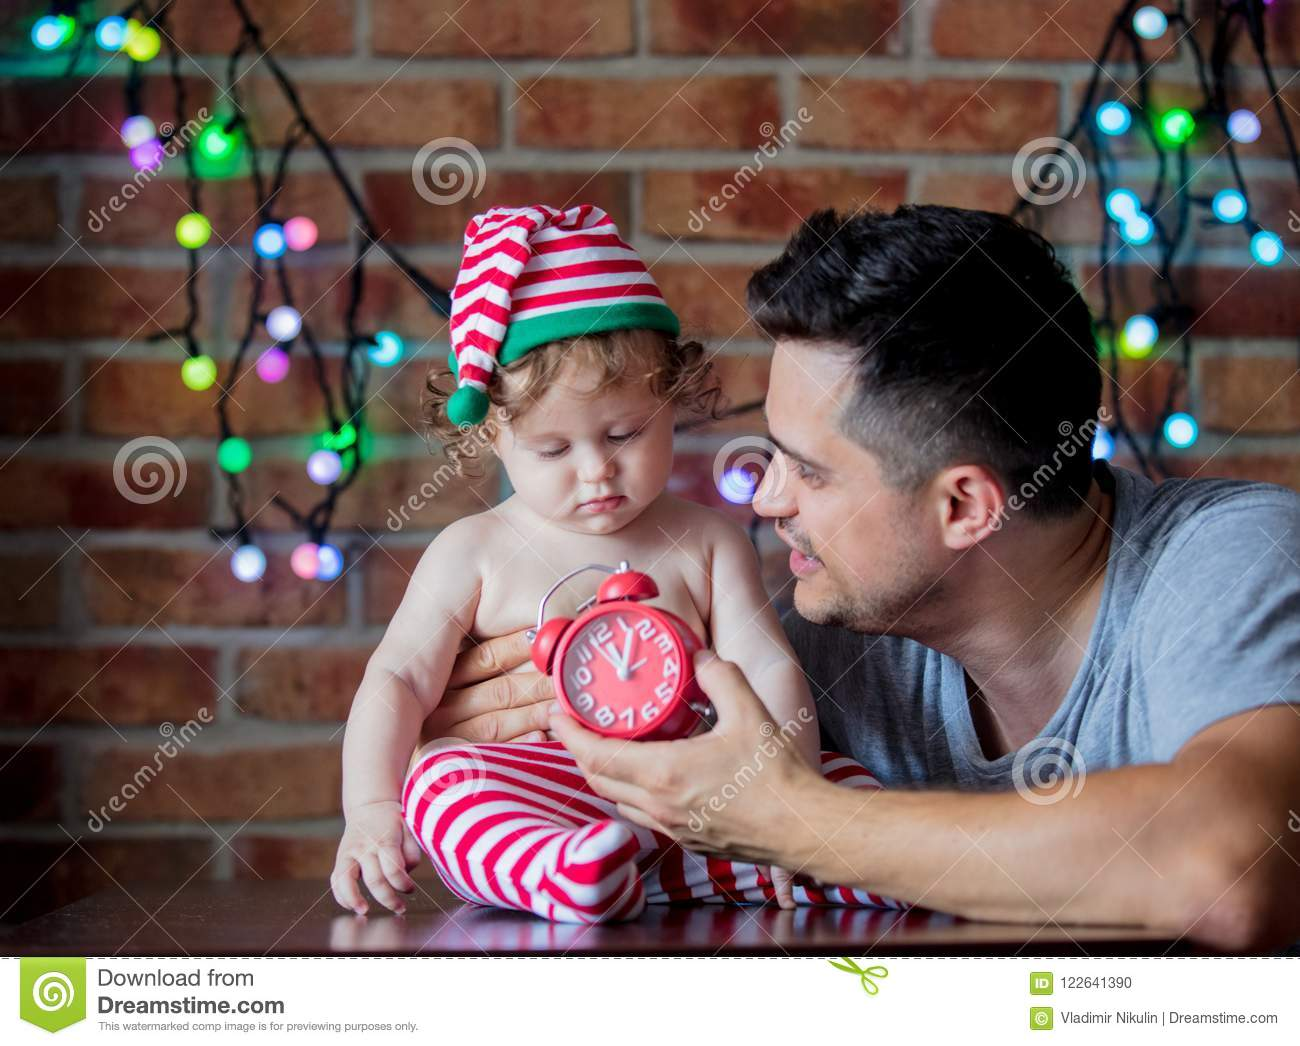 89d1392092d4e Beautiful little baby boy in elf hat and father with alarm clock and fairy  lights on background. Christmas time season image